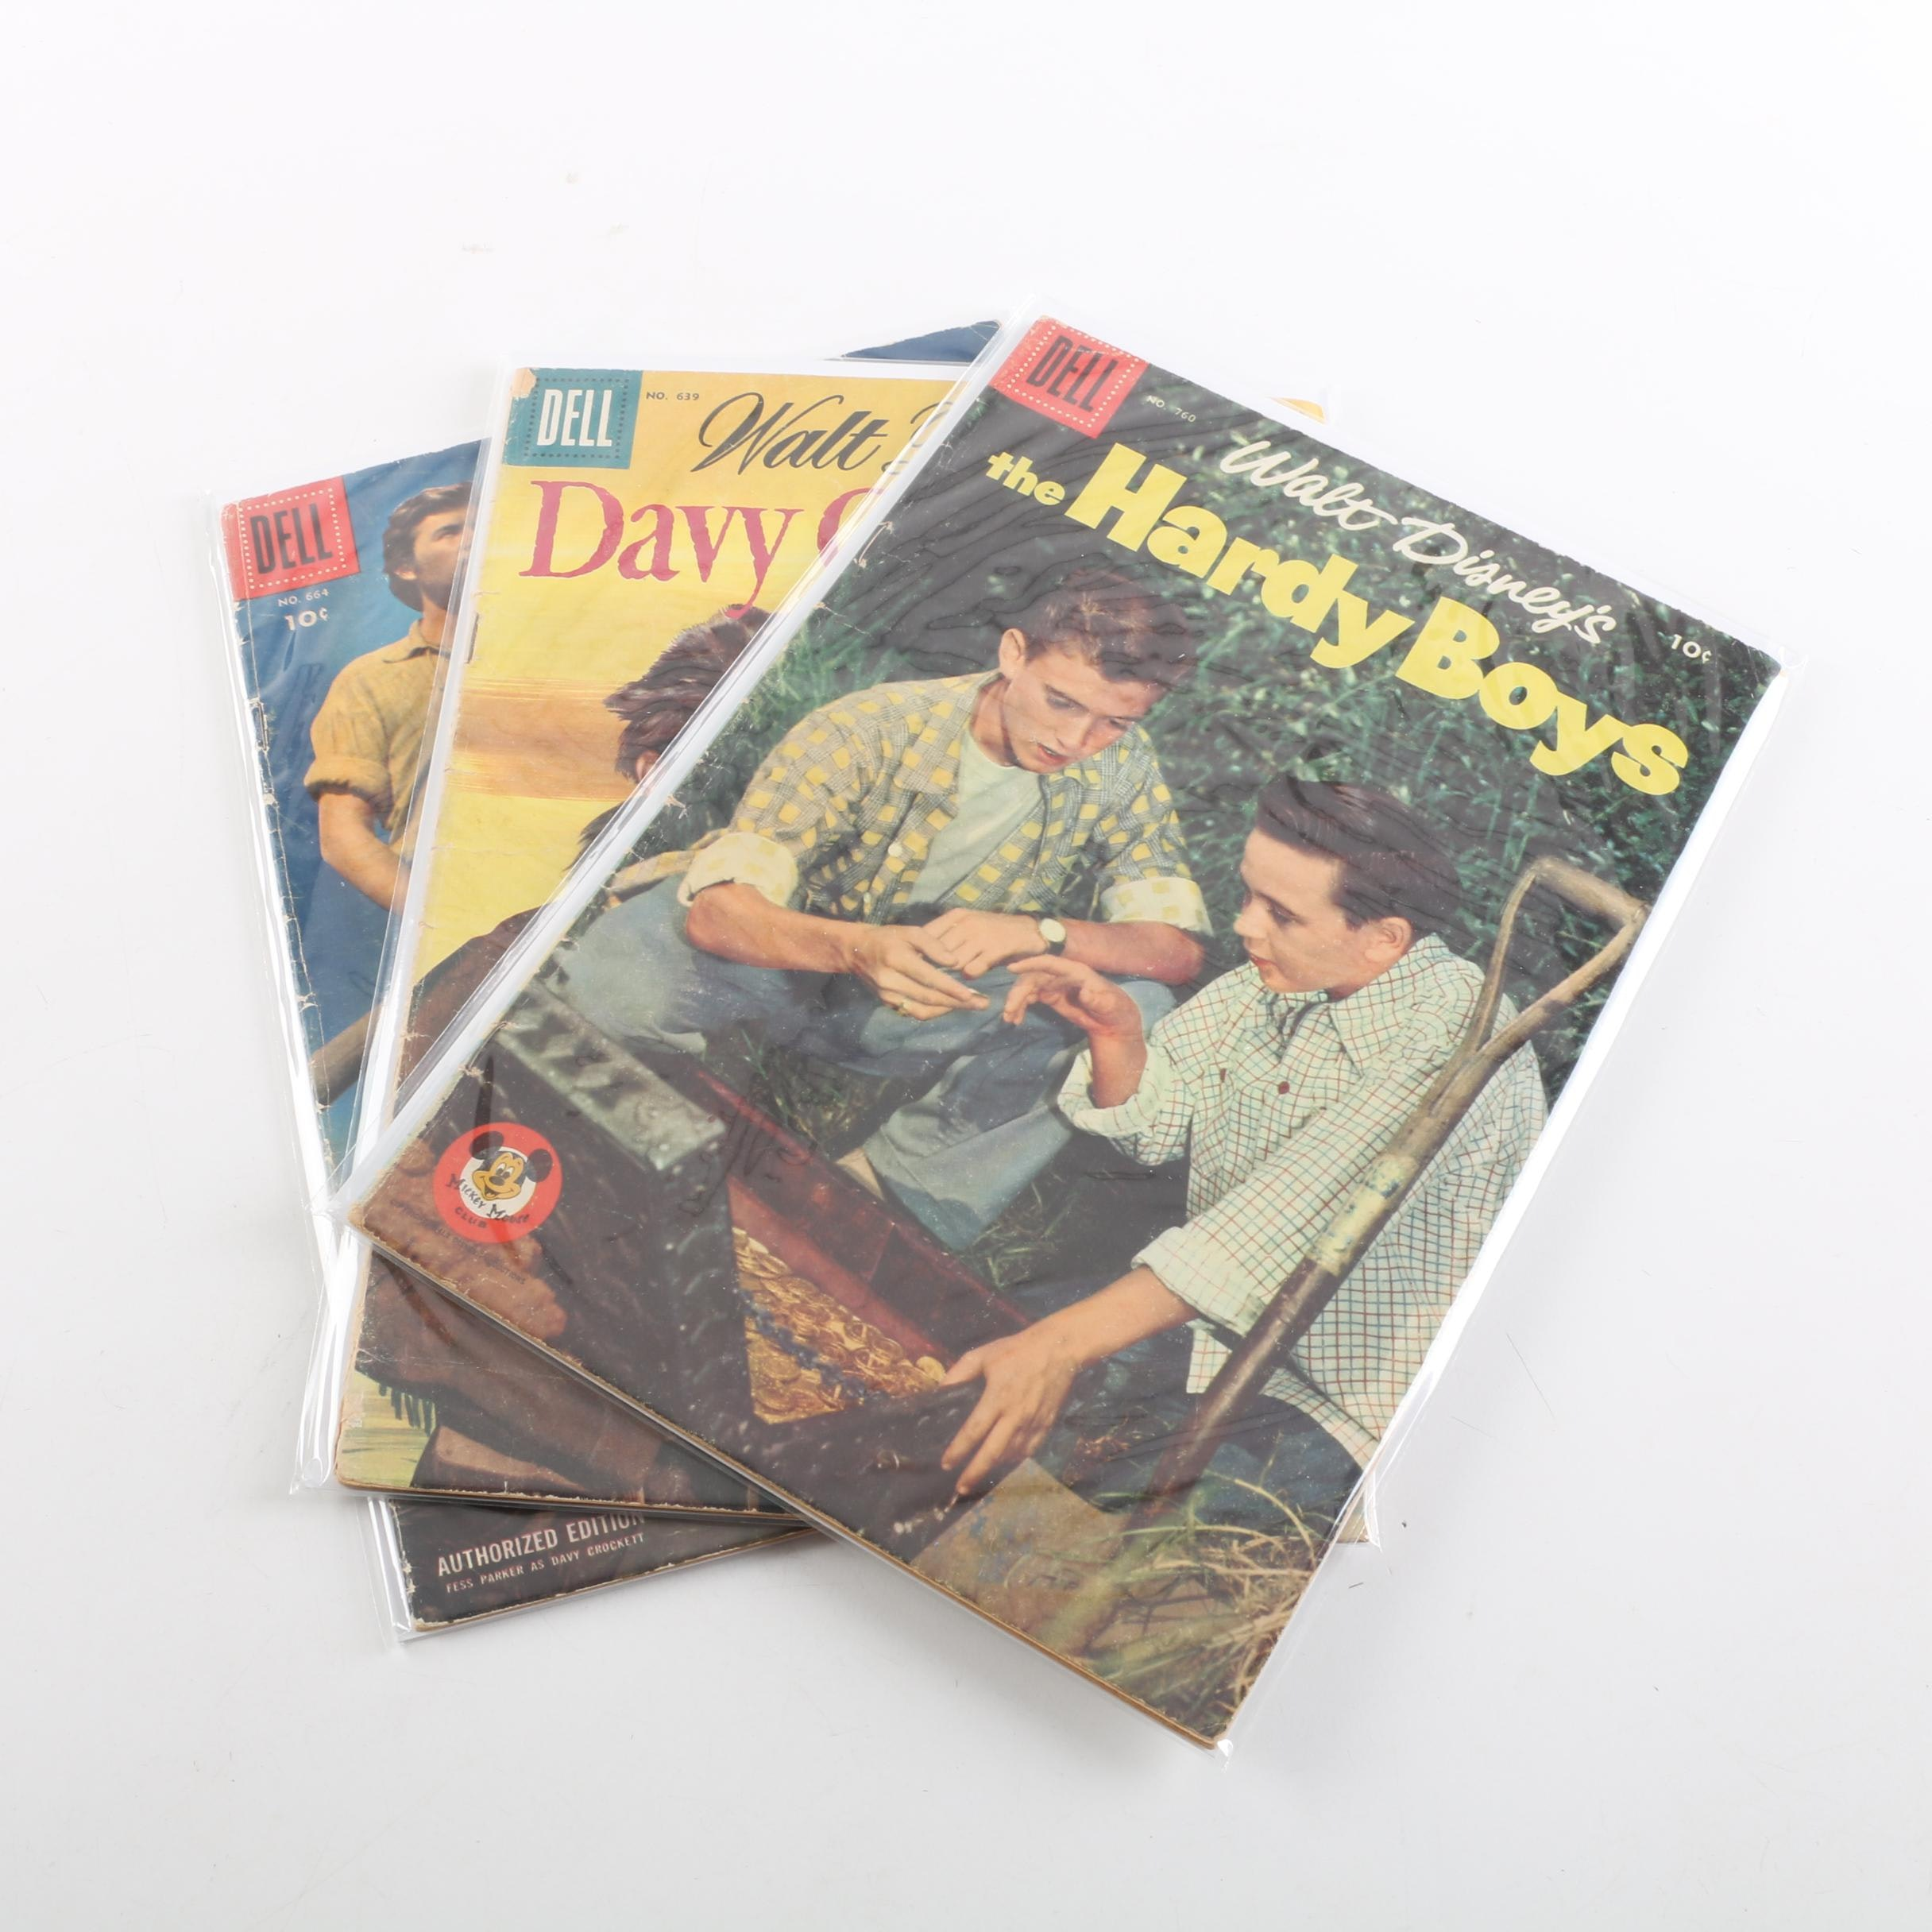 """Mid-1950s """"Four Color"""" Comics Featuring """"Davy Crockett"""""""